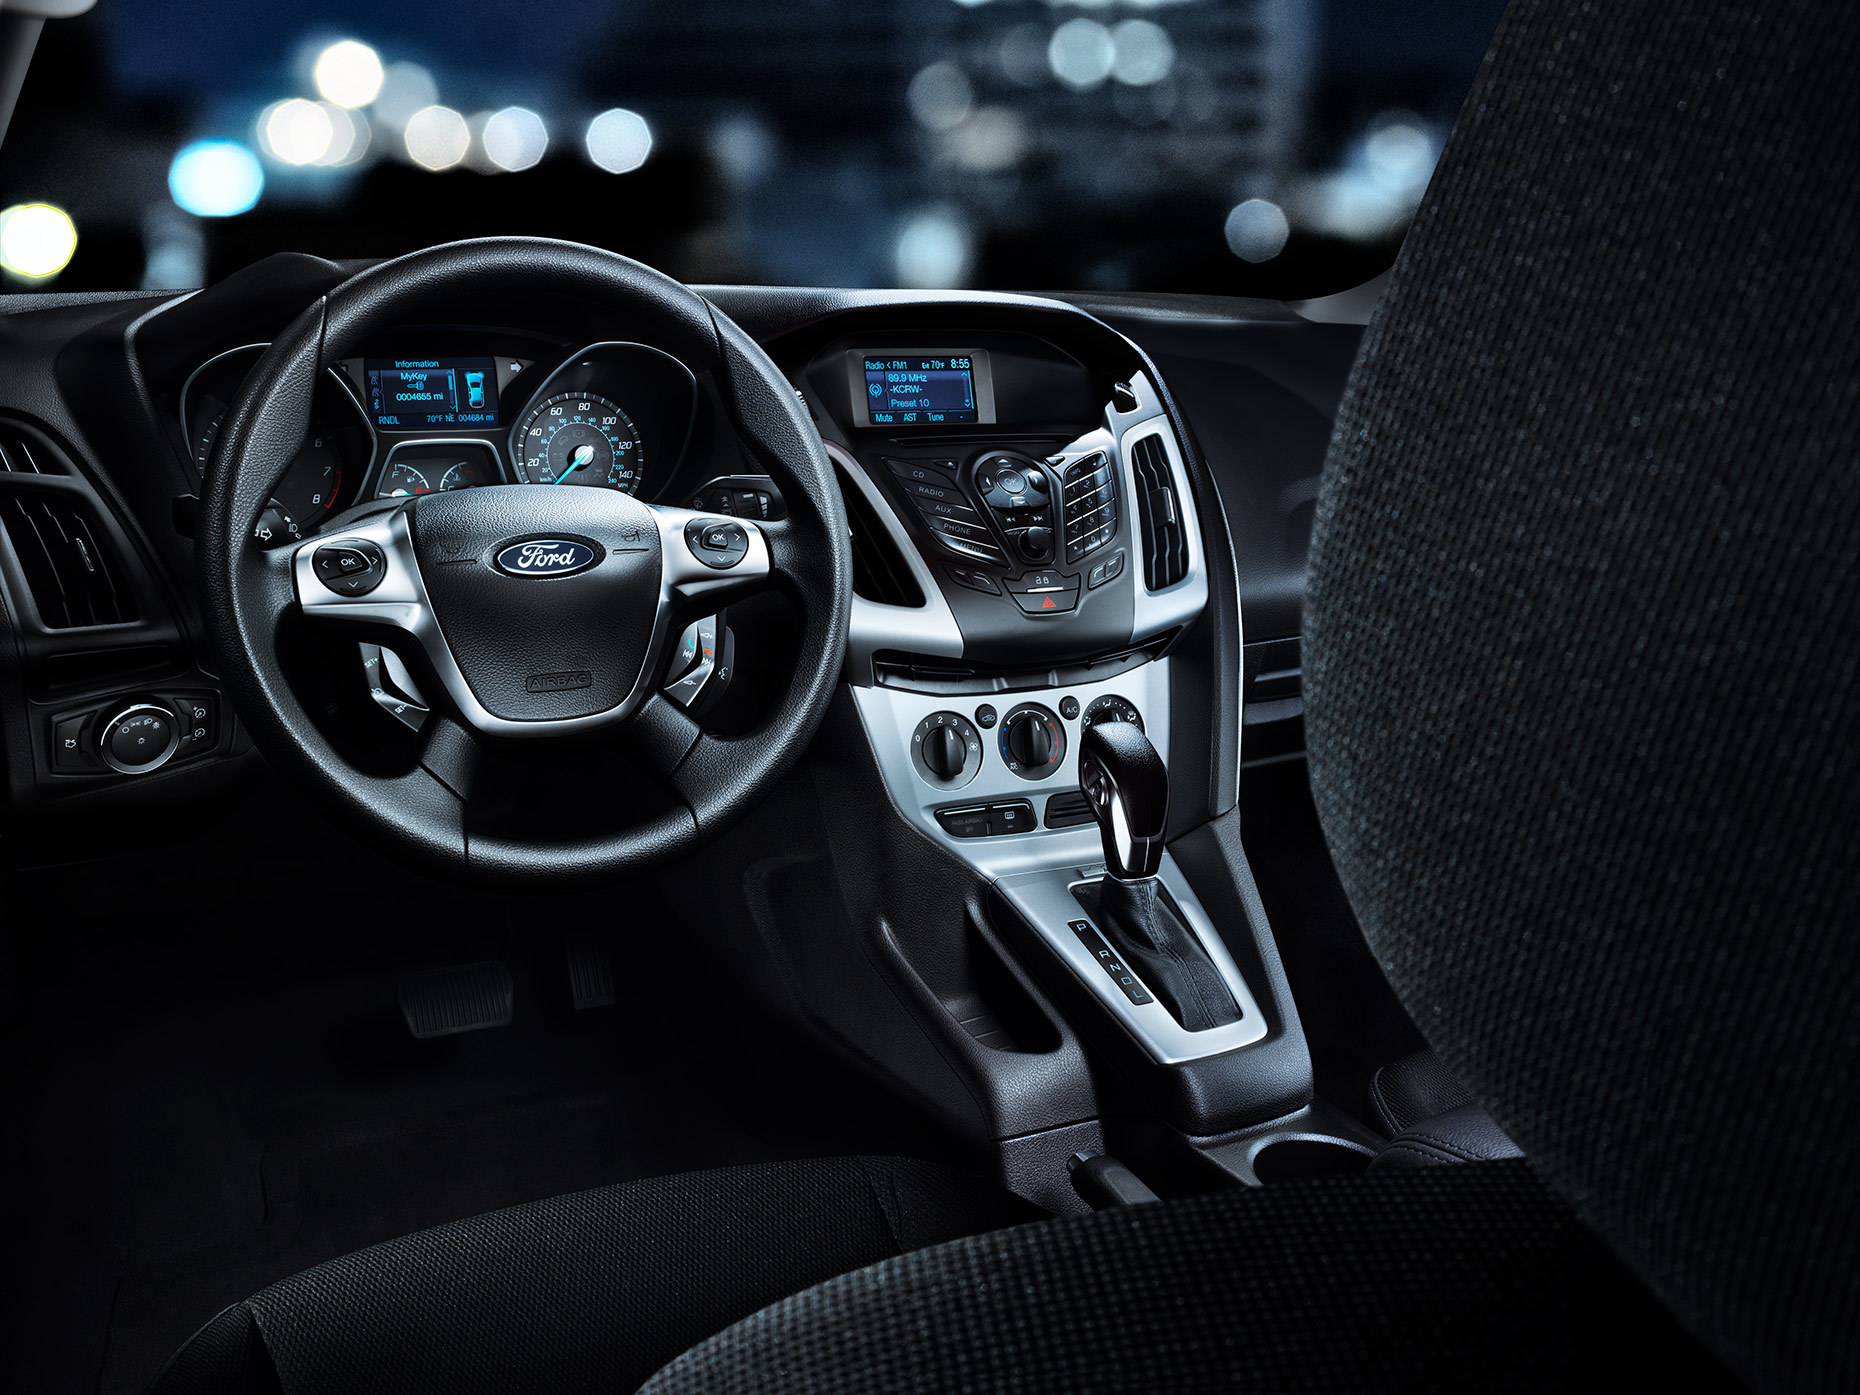 Christopher Nelson Photography|Ford|FocusIInterior